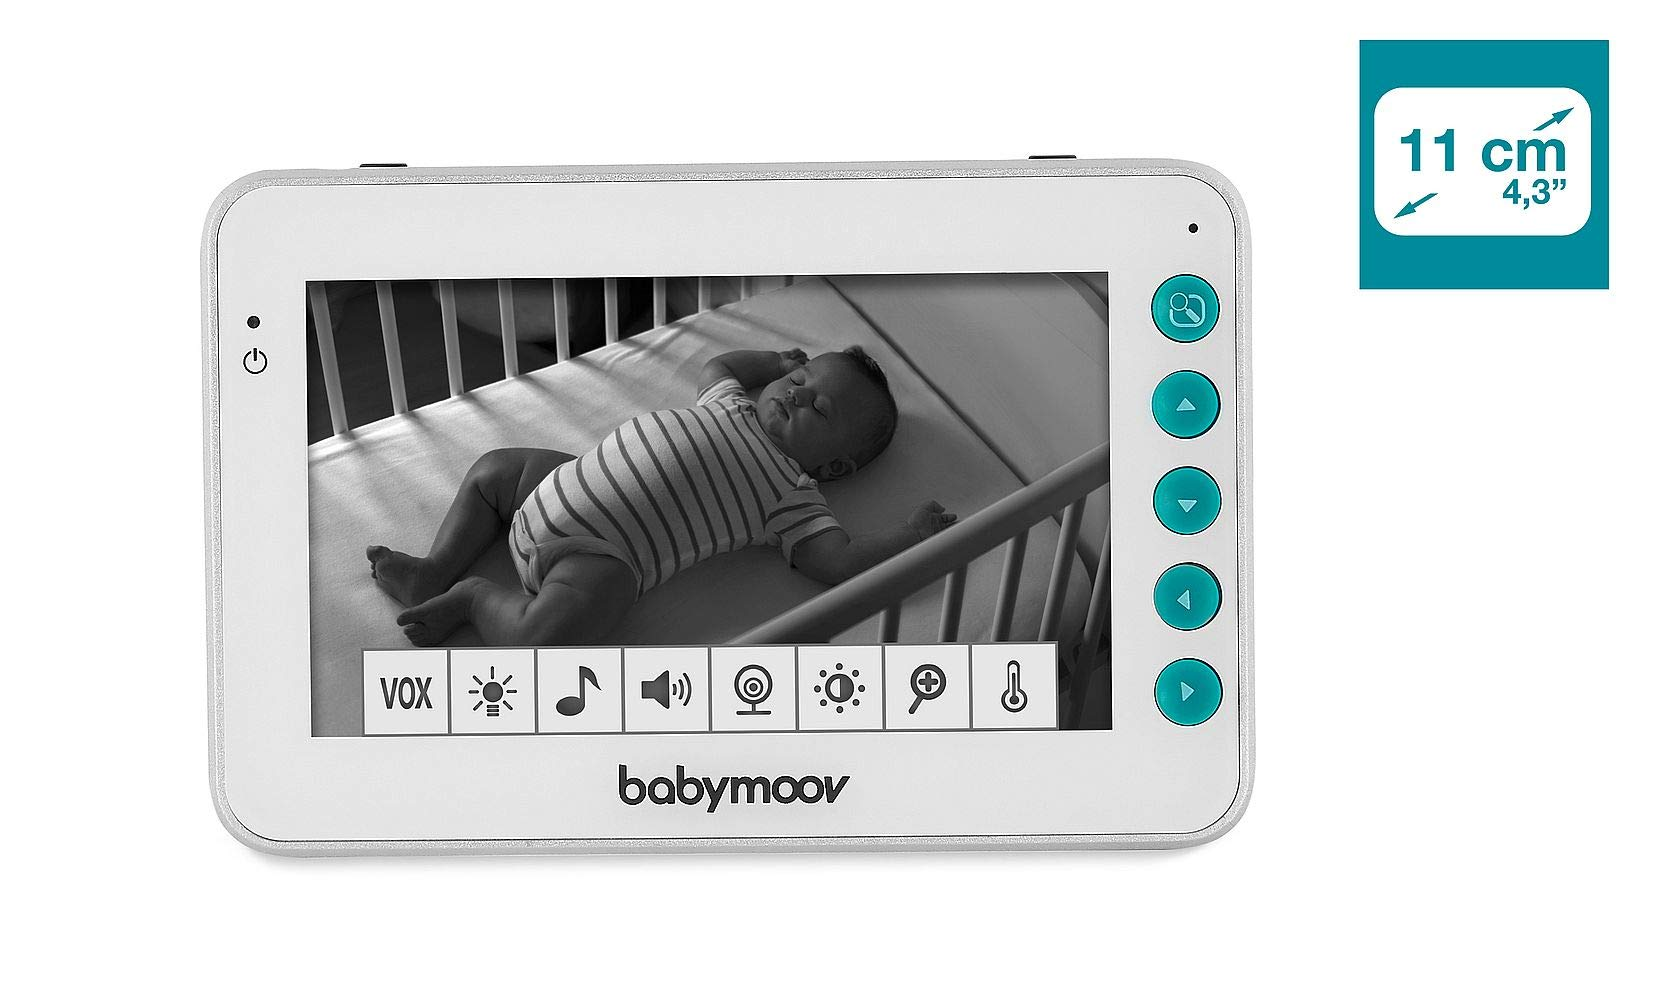 Babymoov YOO Moov Motorised Video Baby Monitor BABYMOOV Includes 2 usb cables (plugs not supplied): adapters are replaced by longer usb cables (2.5 m). they are compatible with all 5v usb plugs, reusable on several devices 360° view: the YOO Moov camera tilts from front to back and right to left. easy to control via the screen (parent unit) Innovative: the motor hidden inside the foot of the camera is very efficient and silent. The camera quietly changes direction. its movements are smooth, not jerky 4